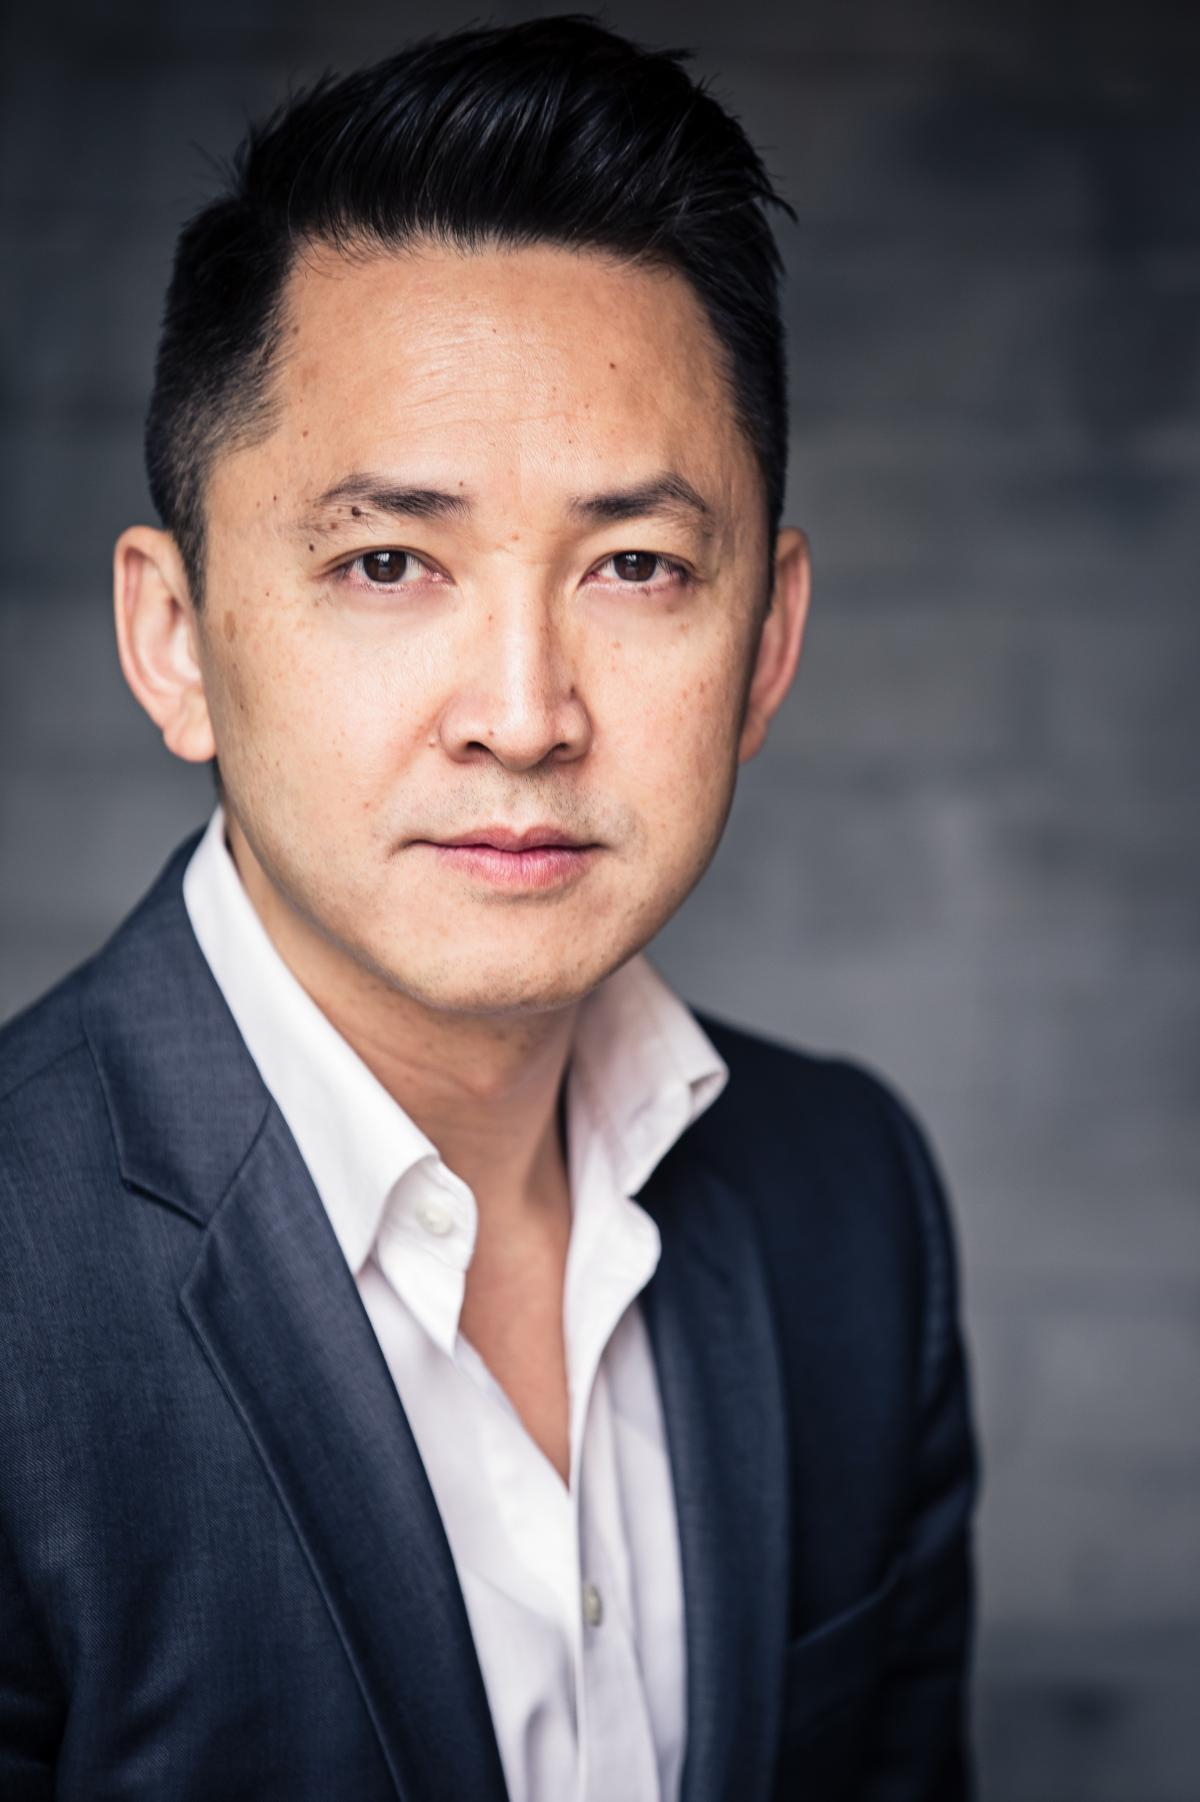 Viet Thanh Nguyen teaches English and American Studies at the University of Southern California.